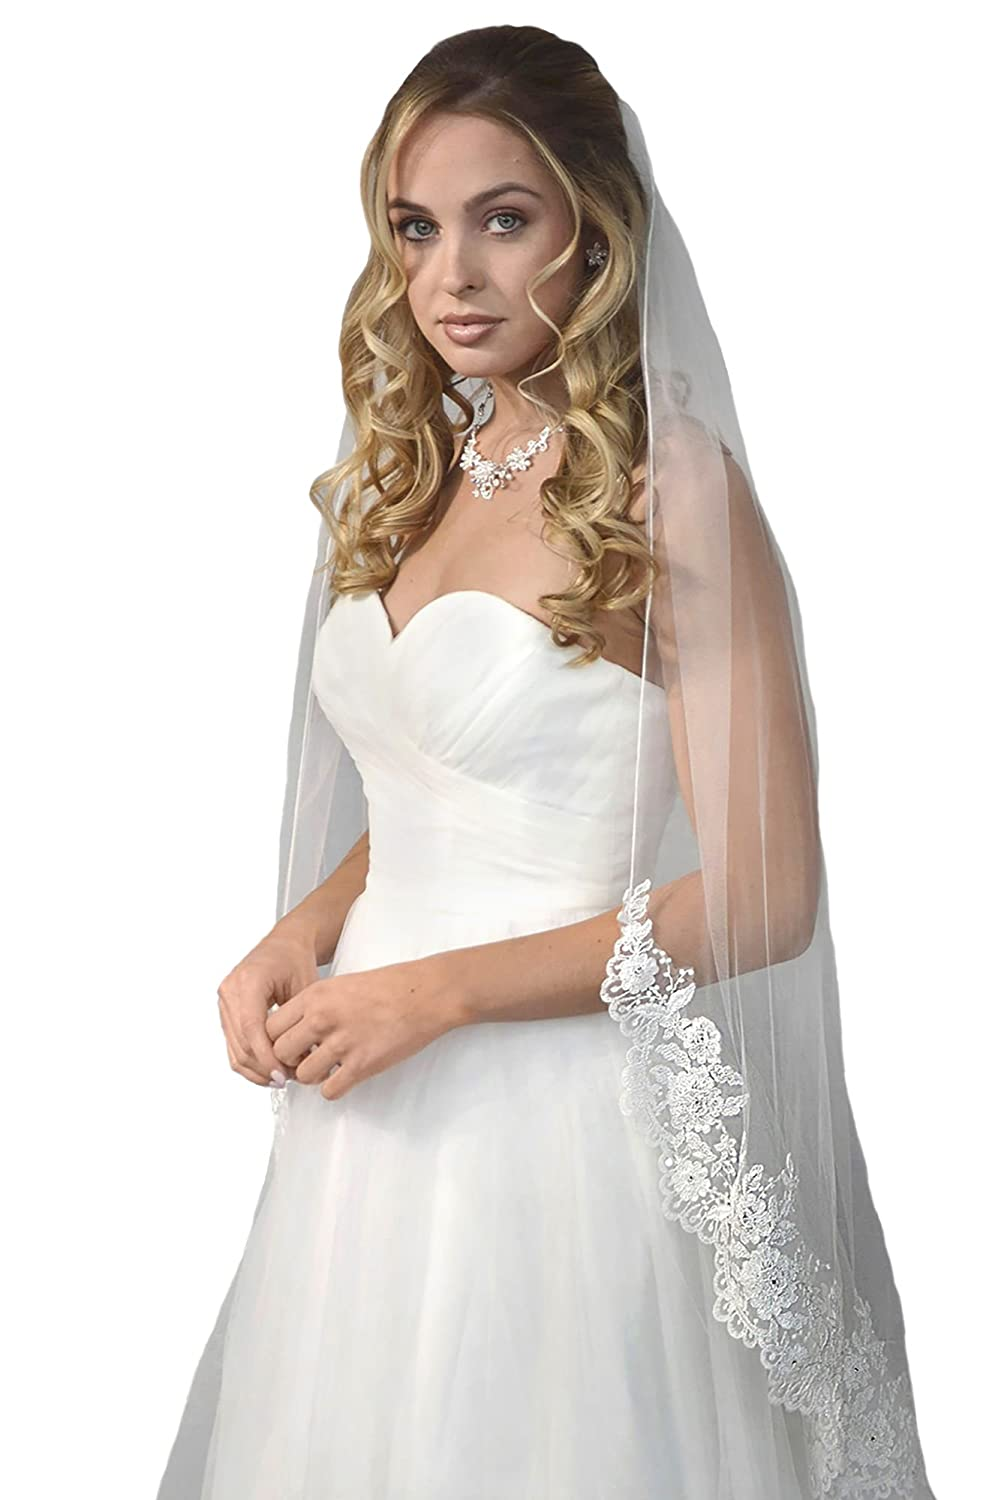 Passat Pale Ivory Single Tier 45embroidered Floral Silver Gold Lace